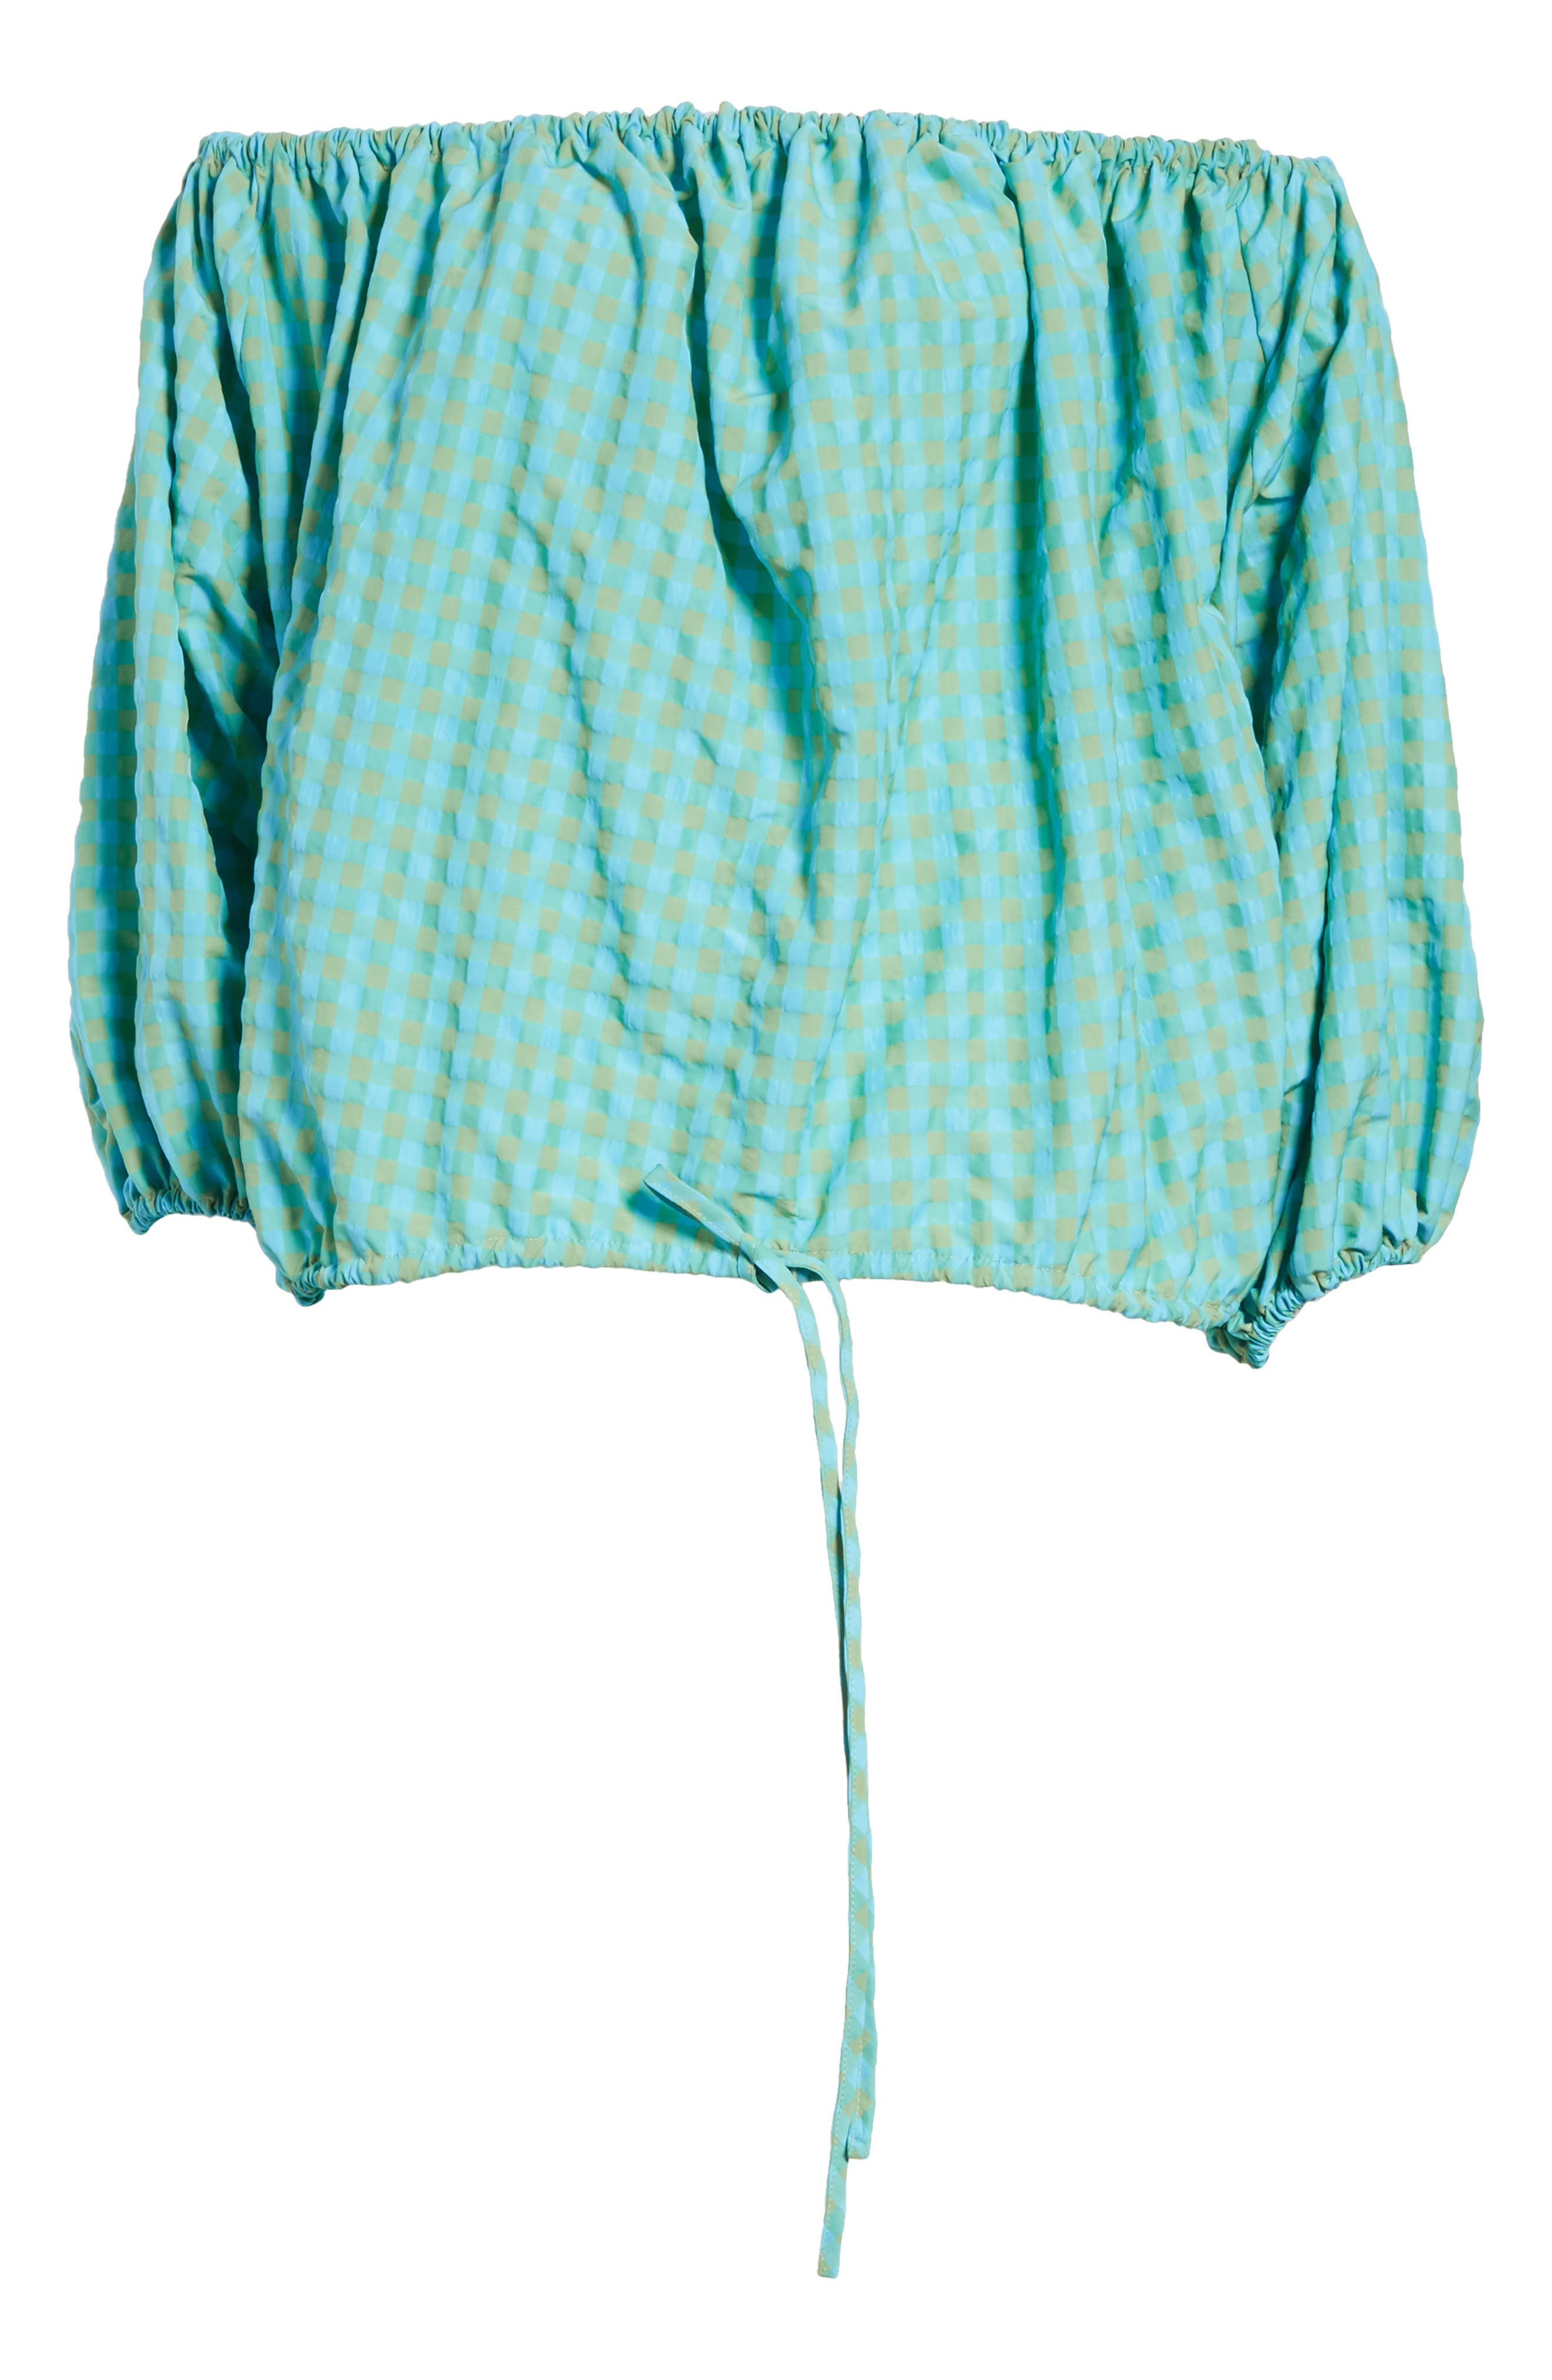 Marques'Almeida Off the Shoulder Gingham Top,                             Alternate thumbnail 6, color,                             440